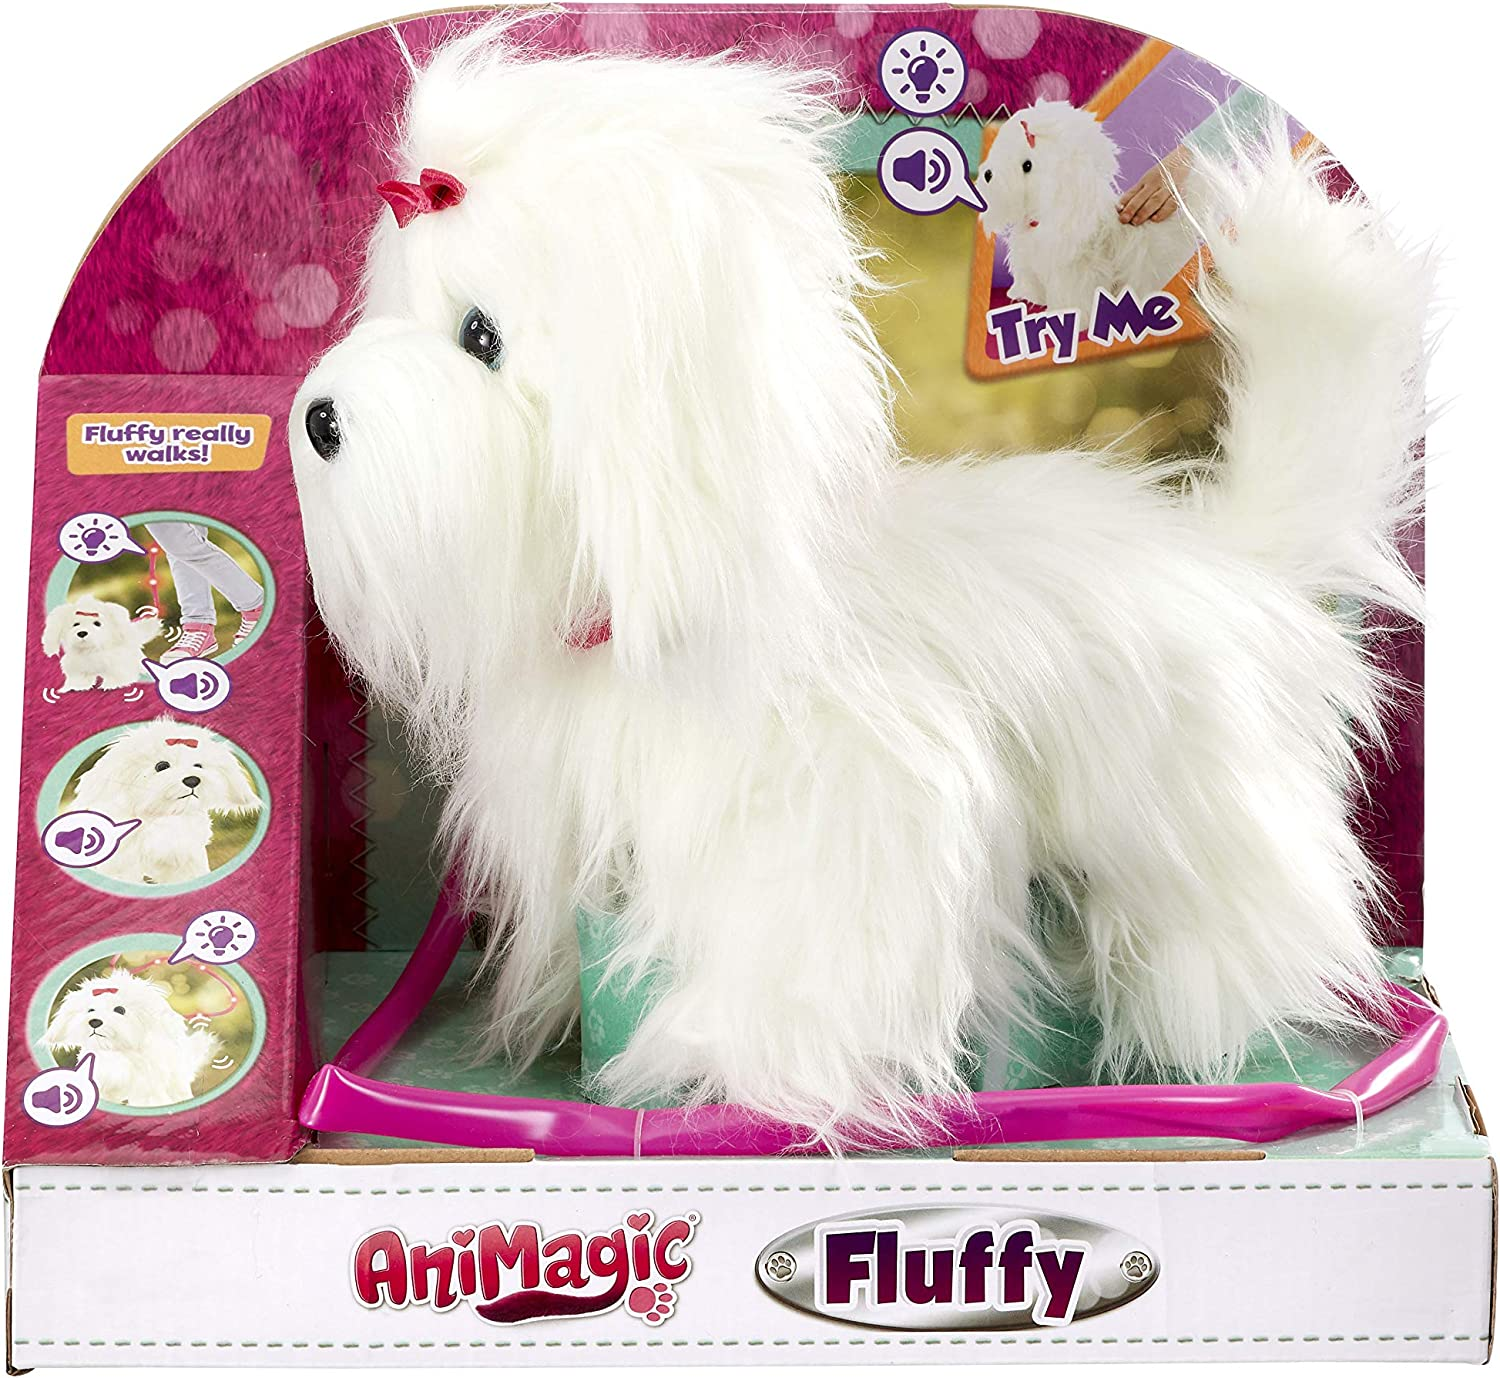 Animagic-256606 Fluffy Perro, Felpa Funcional, Color Blanco (256606)